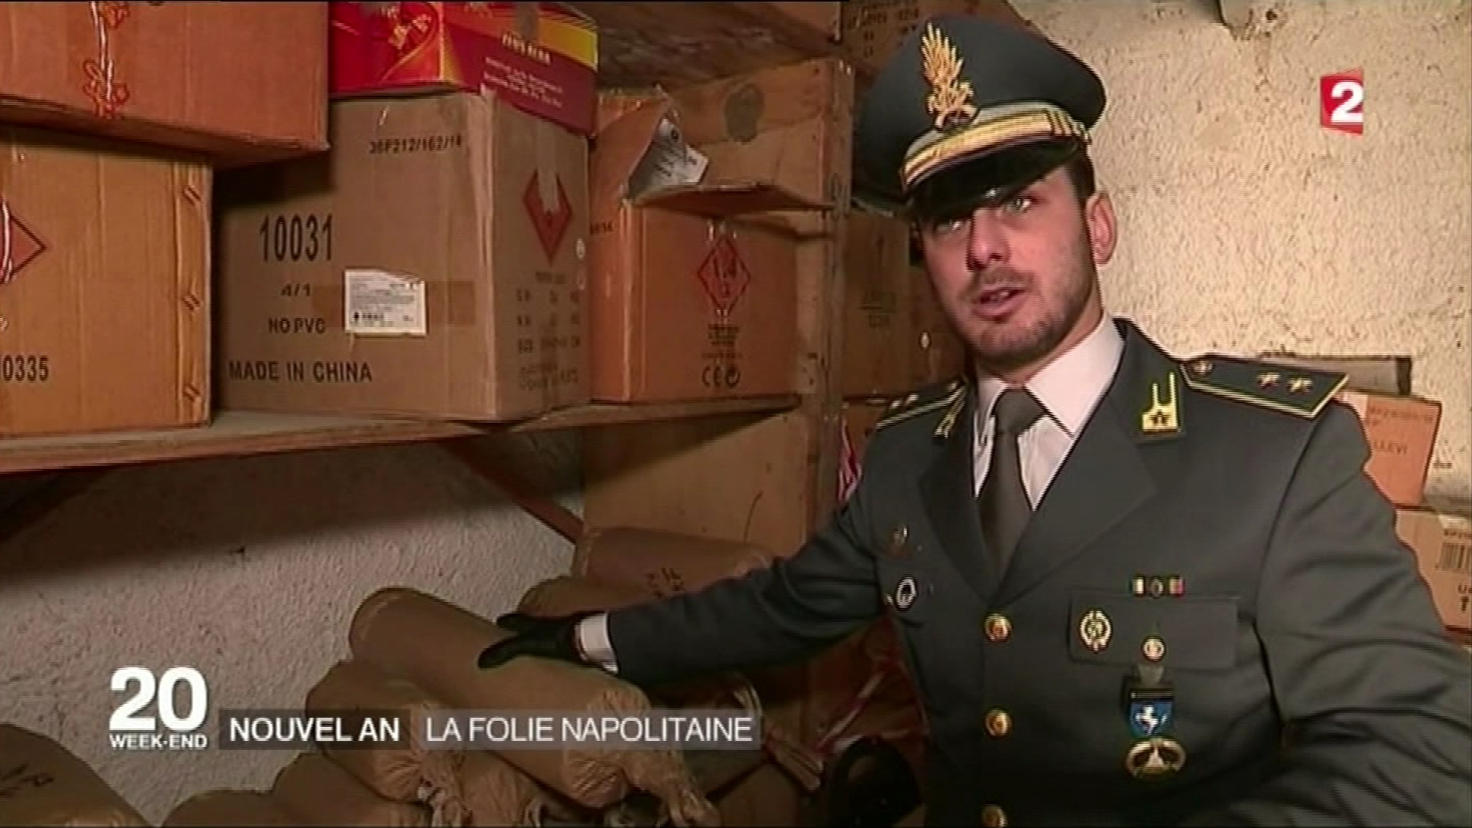 Commandant Andrea Giugno of the Guardia di Finanza showing consficated fireworks